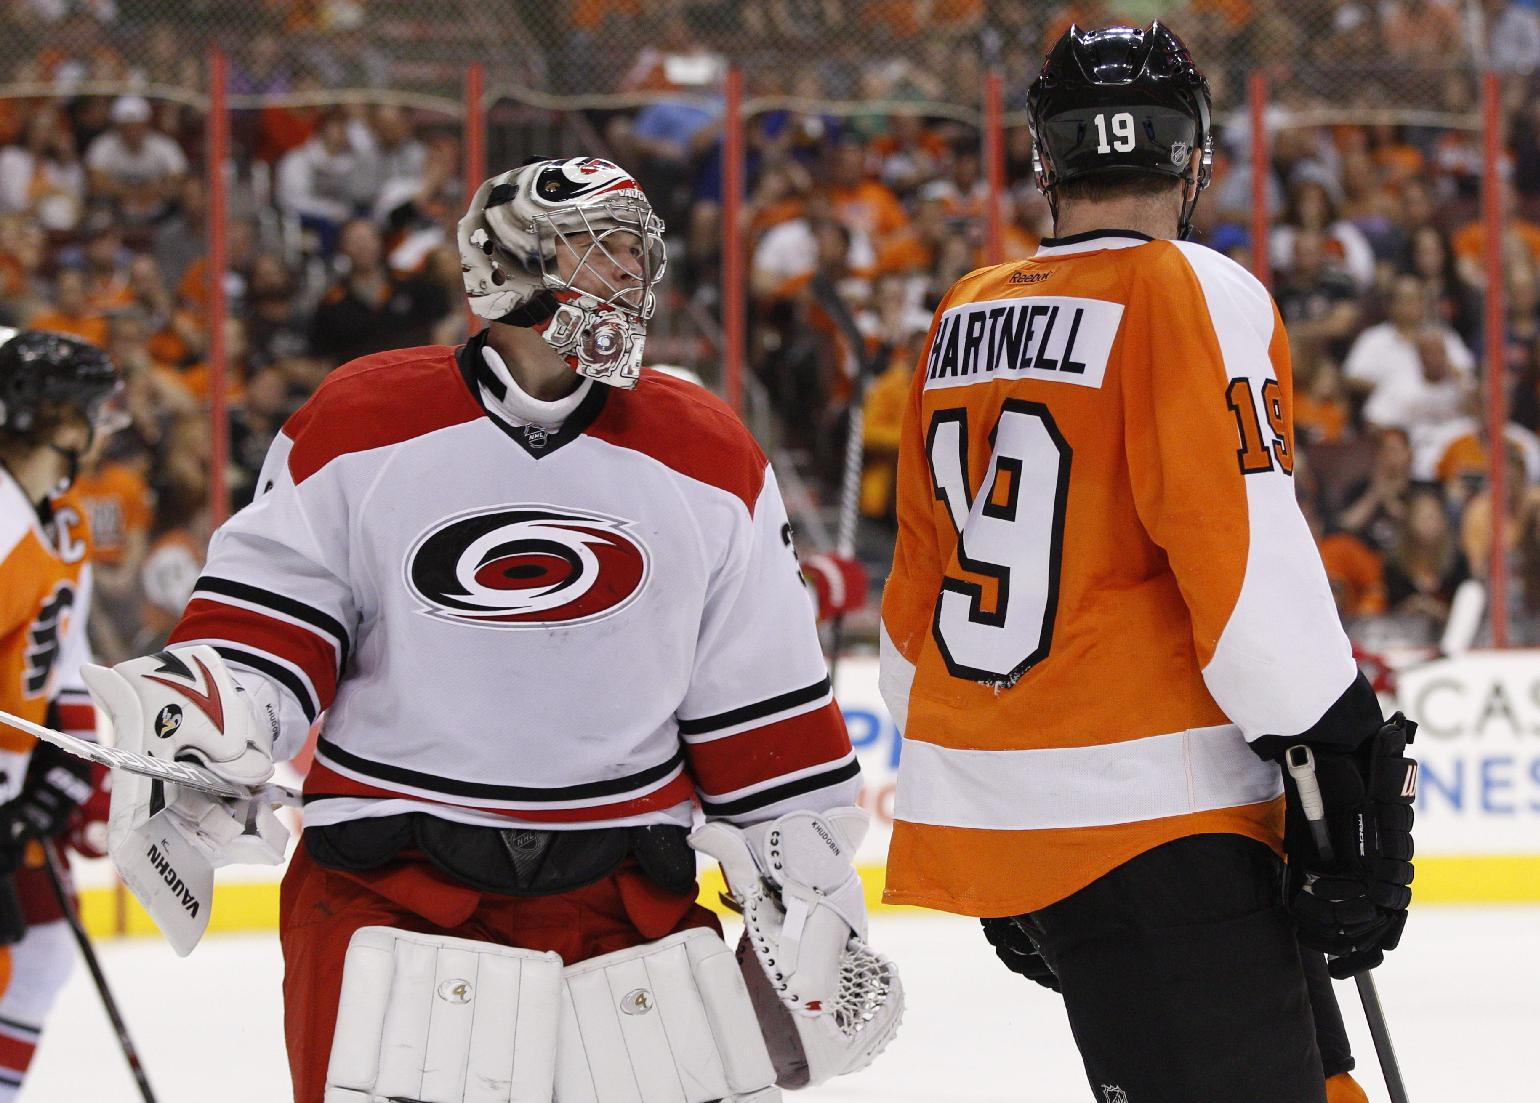 Carolina Hurricanes' Anton Khudobin, left, of Russia has some words with Philadelphia Flyers' Scott Hartnell, left, after Hartnell collided with Khudobin in the goal during the second period of an NHL hockey game, Sunday, April 13, 2014, in Philadelphia